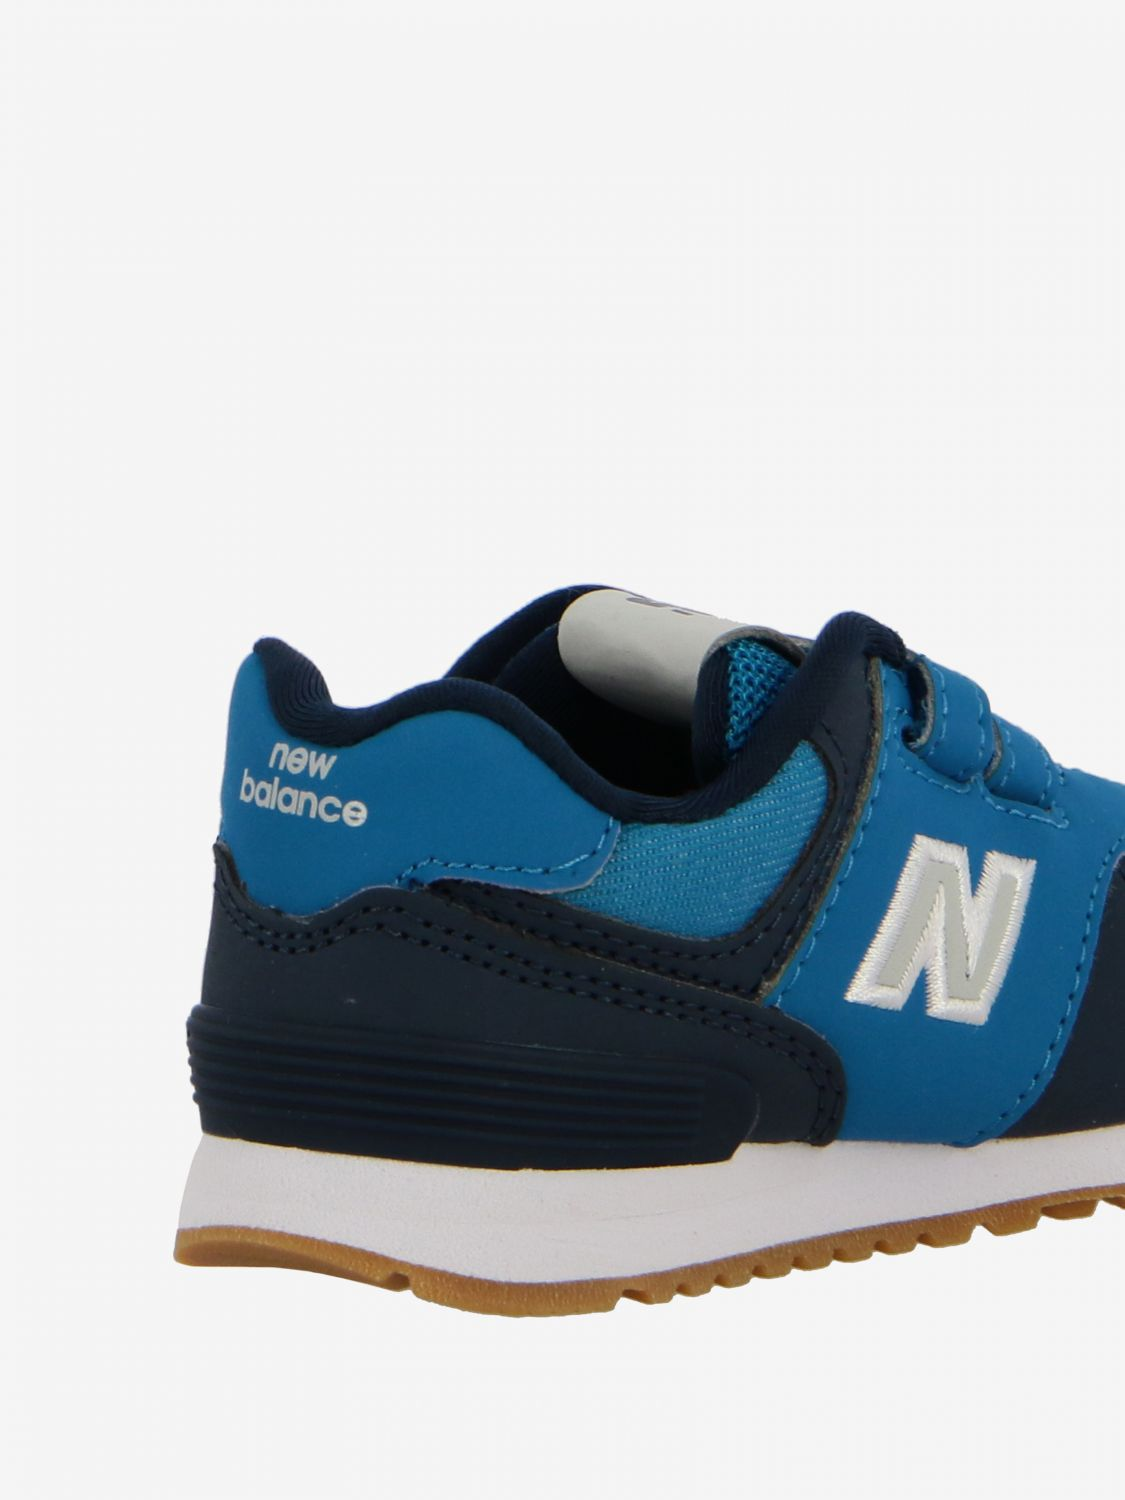 Shoes kids New Balance gnawed blue 5